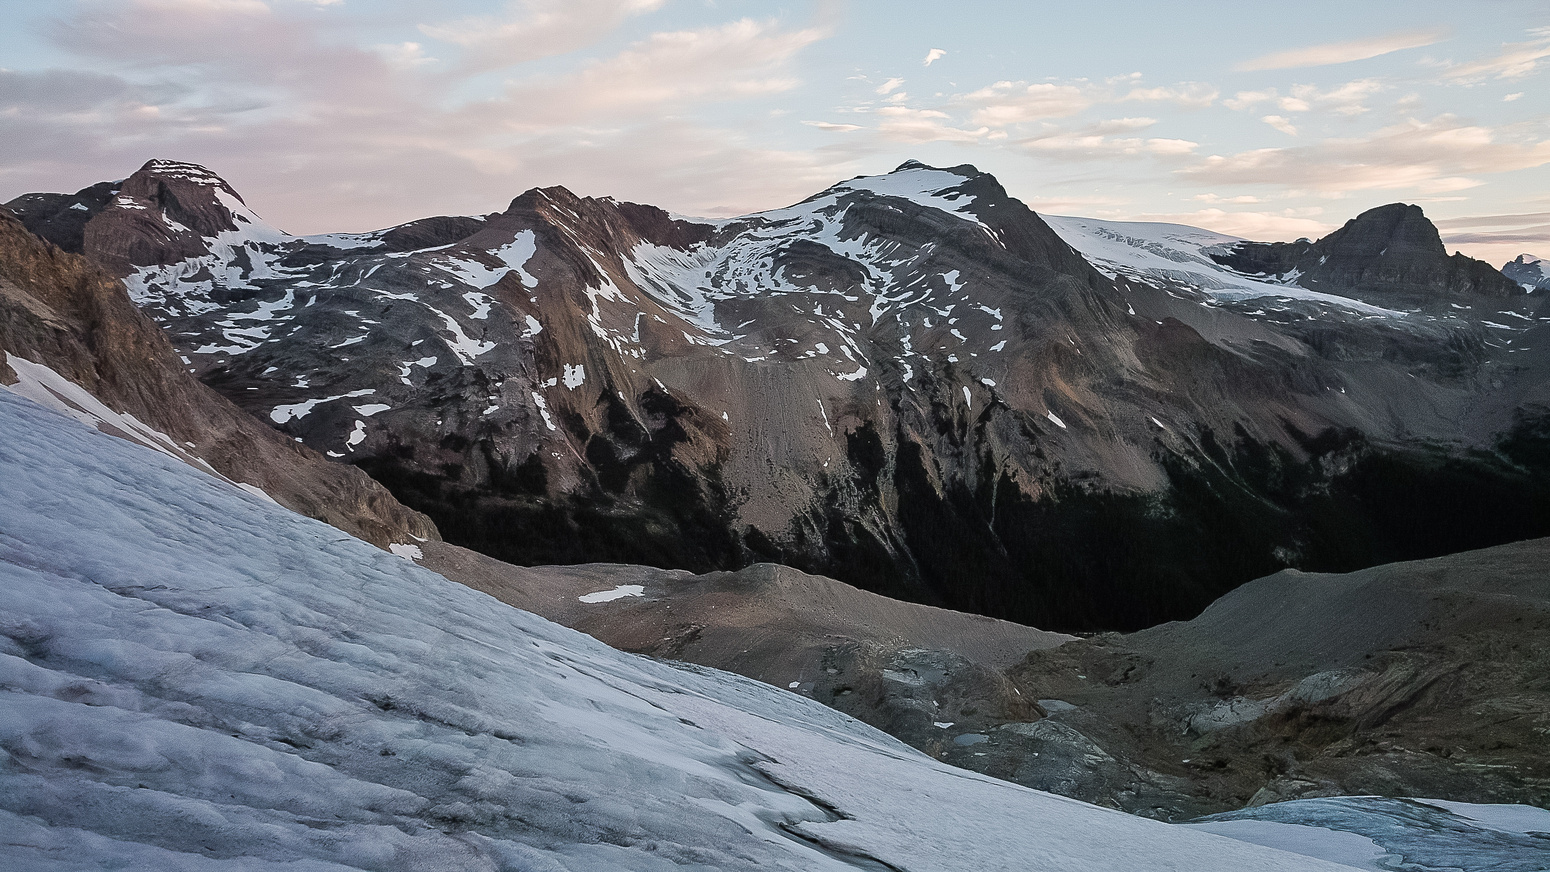 Looking back down the glacier - morning light just starting now.